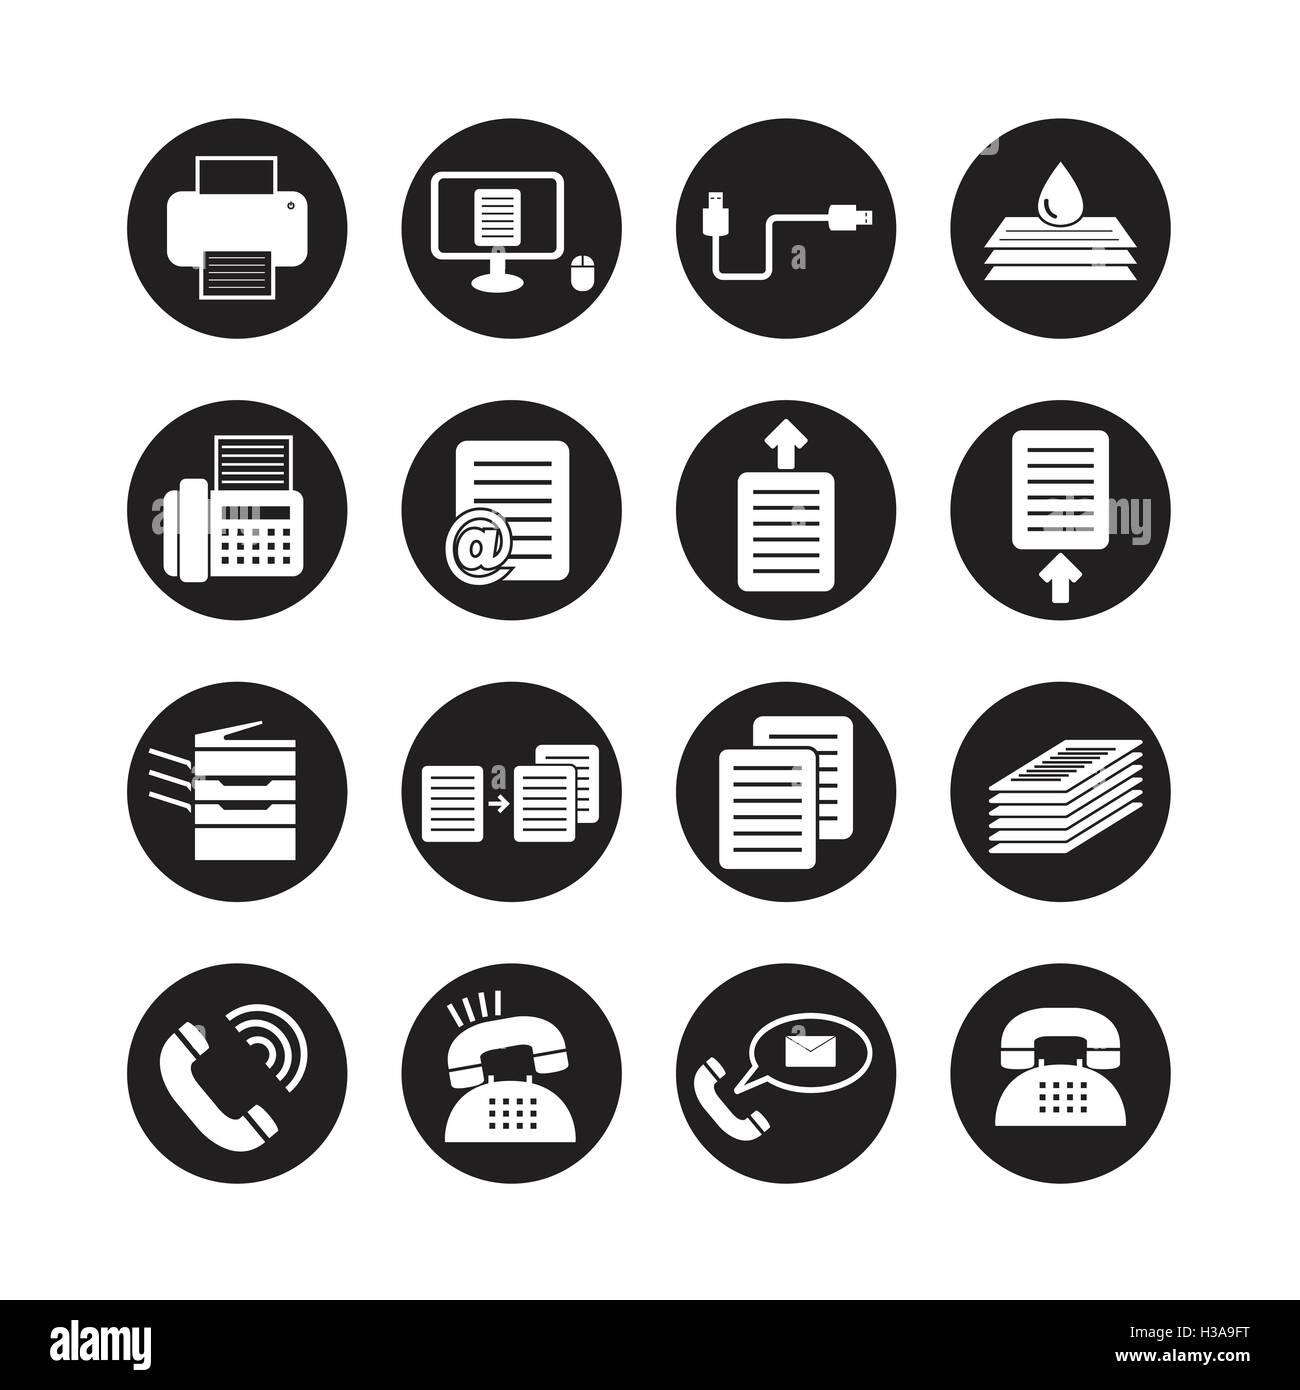 Office tools vector,icon set - Stock Image